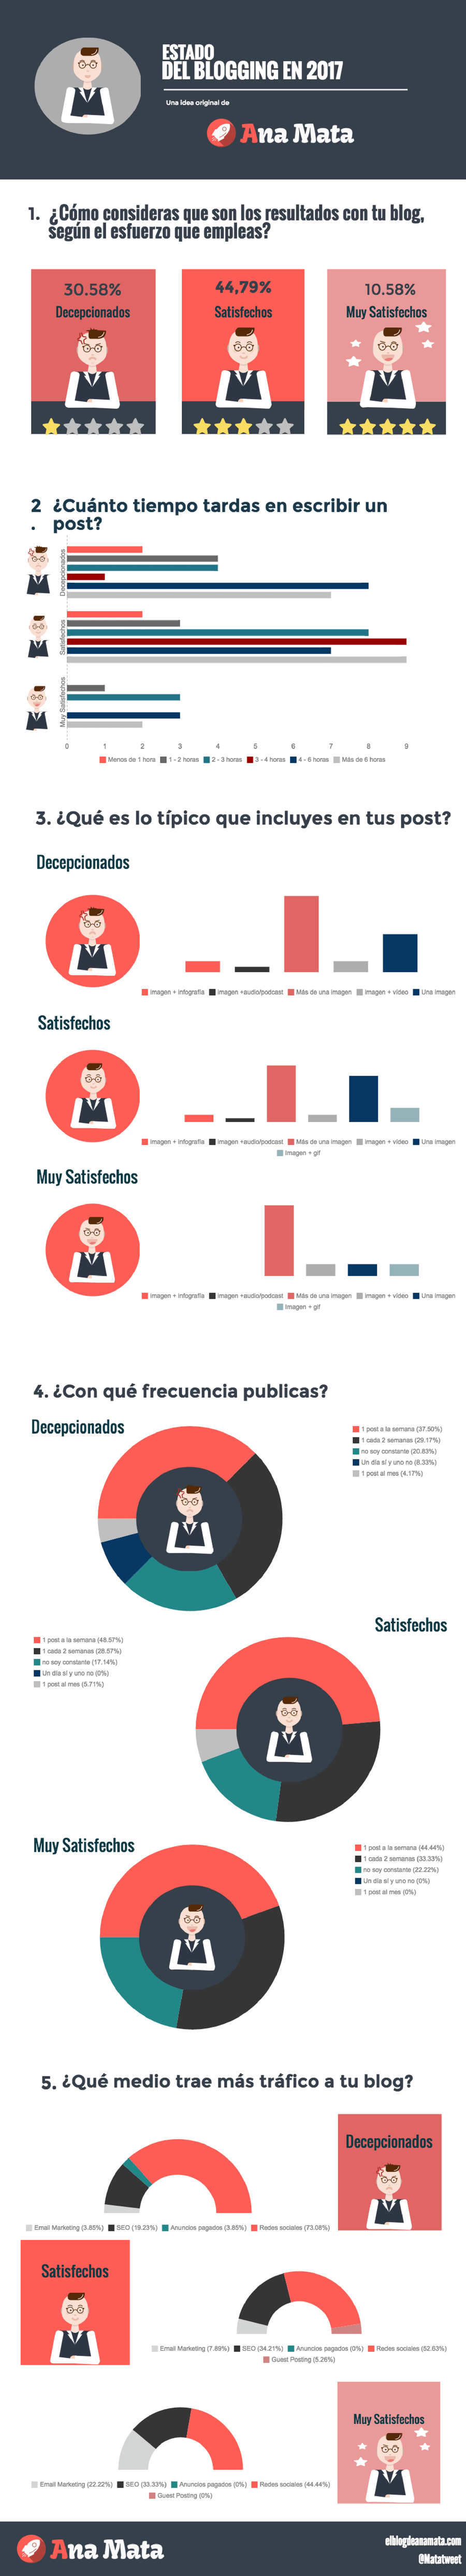 [INFOGRAFIA] Estado del #Blogging en 2017